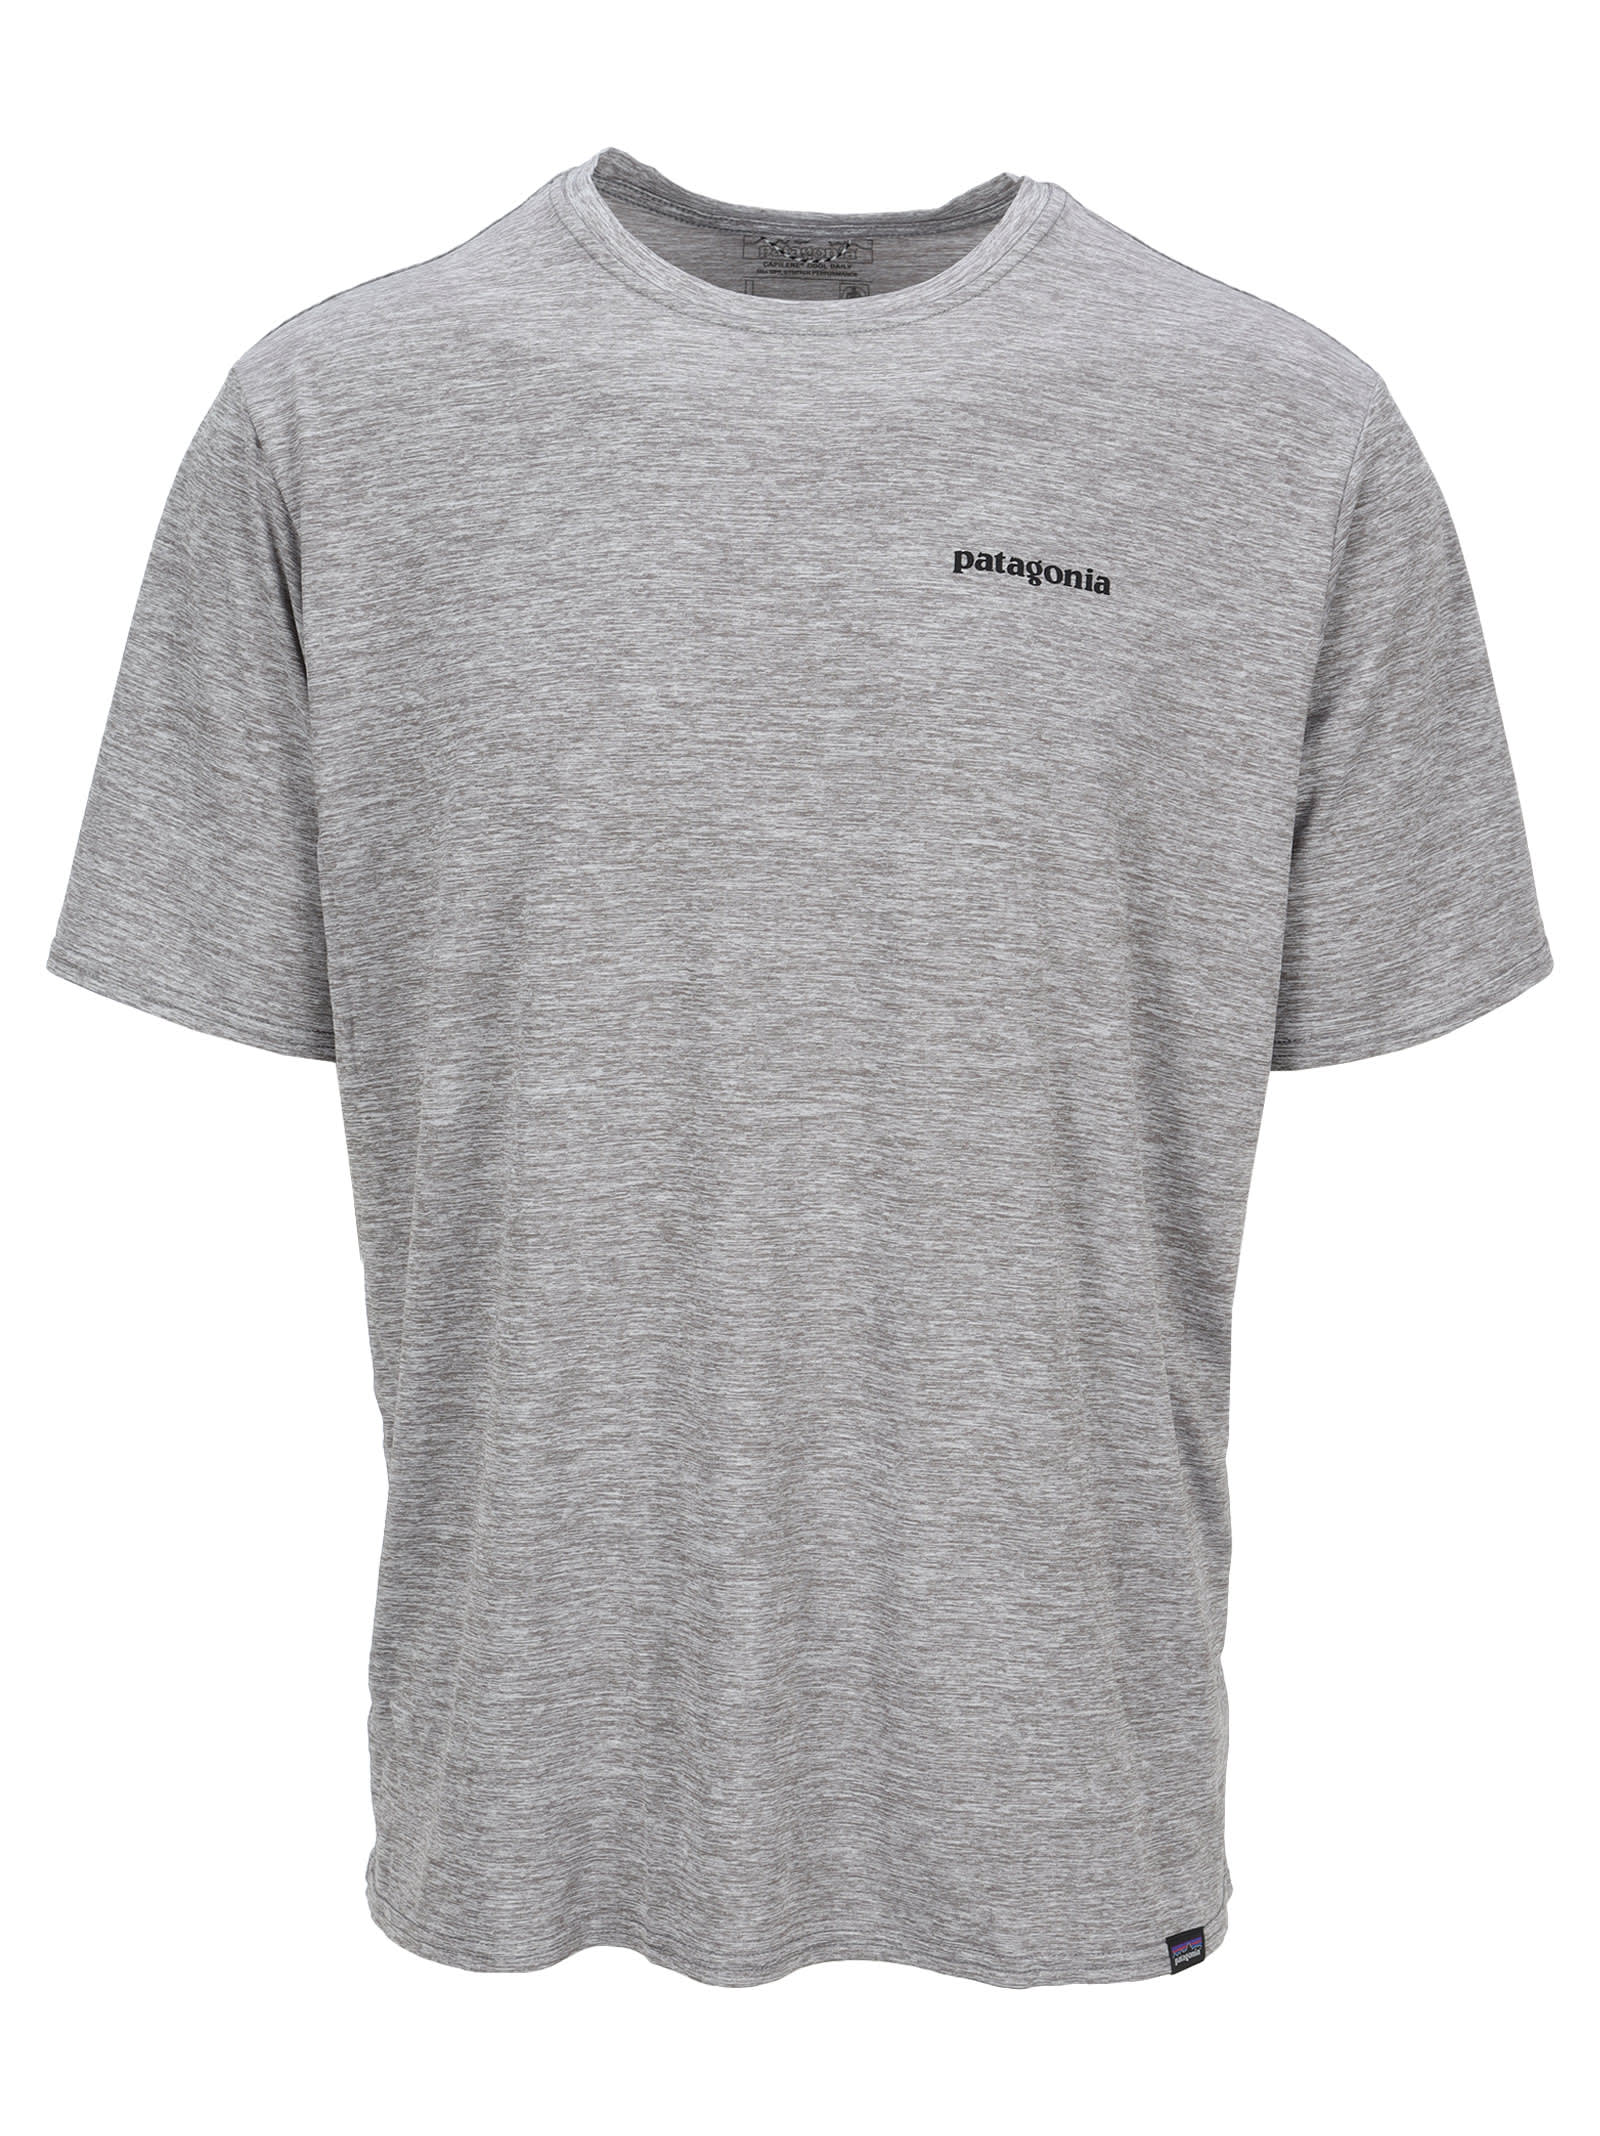 Grey Capilene T-shirt By Patagonia. Featuring: - Crew Neck; - Logo Print At The Chest And Back; - Short Sleeves; - Straight Hem. Composition: 100% POLYESTER